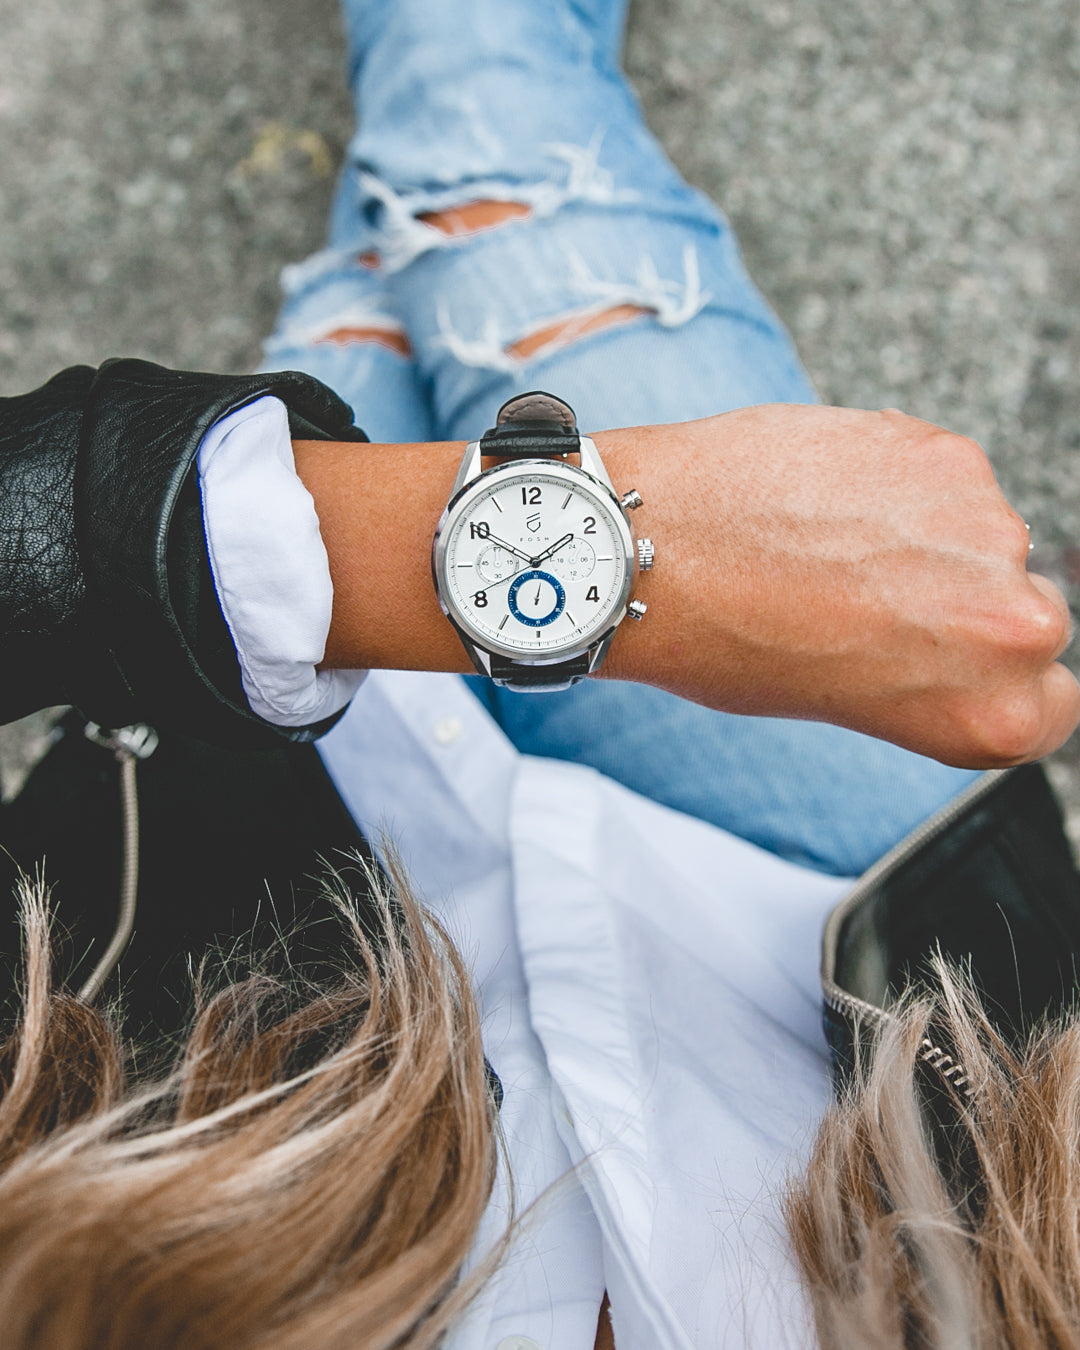 women with ripped jeans and black leather jacket wearing silver and white watch